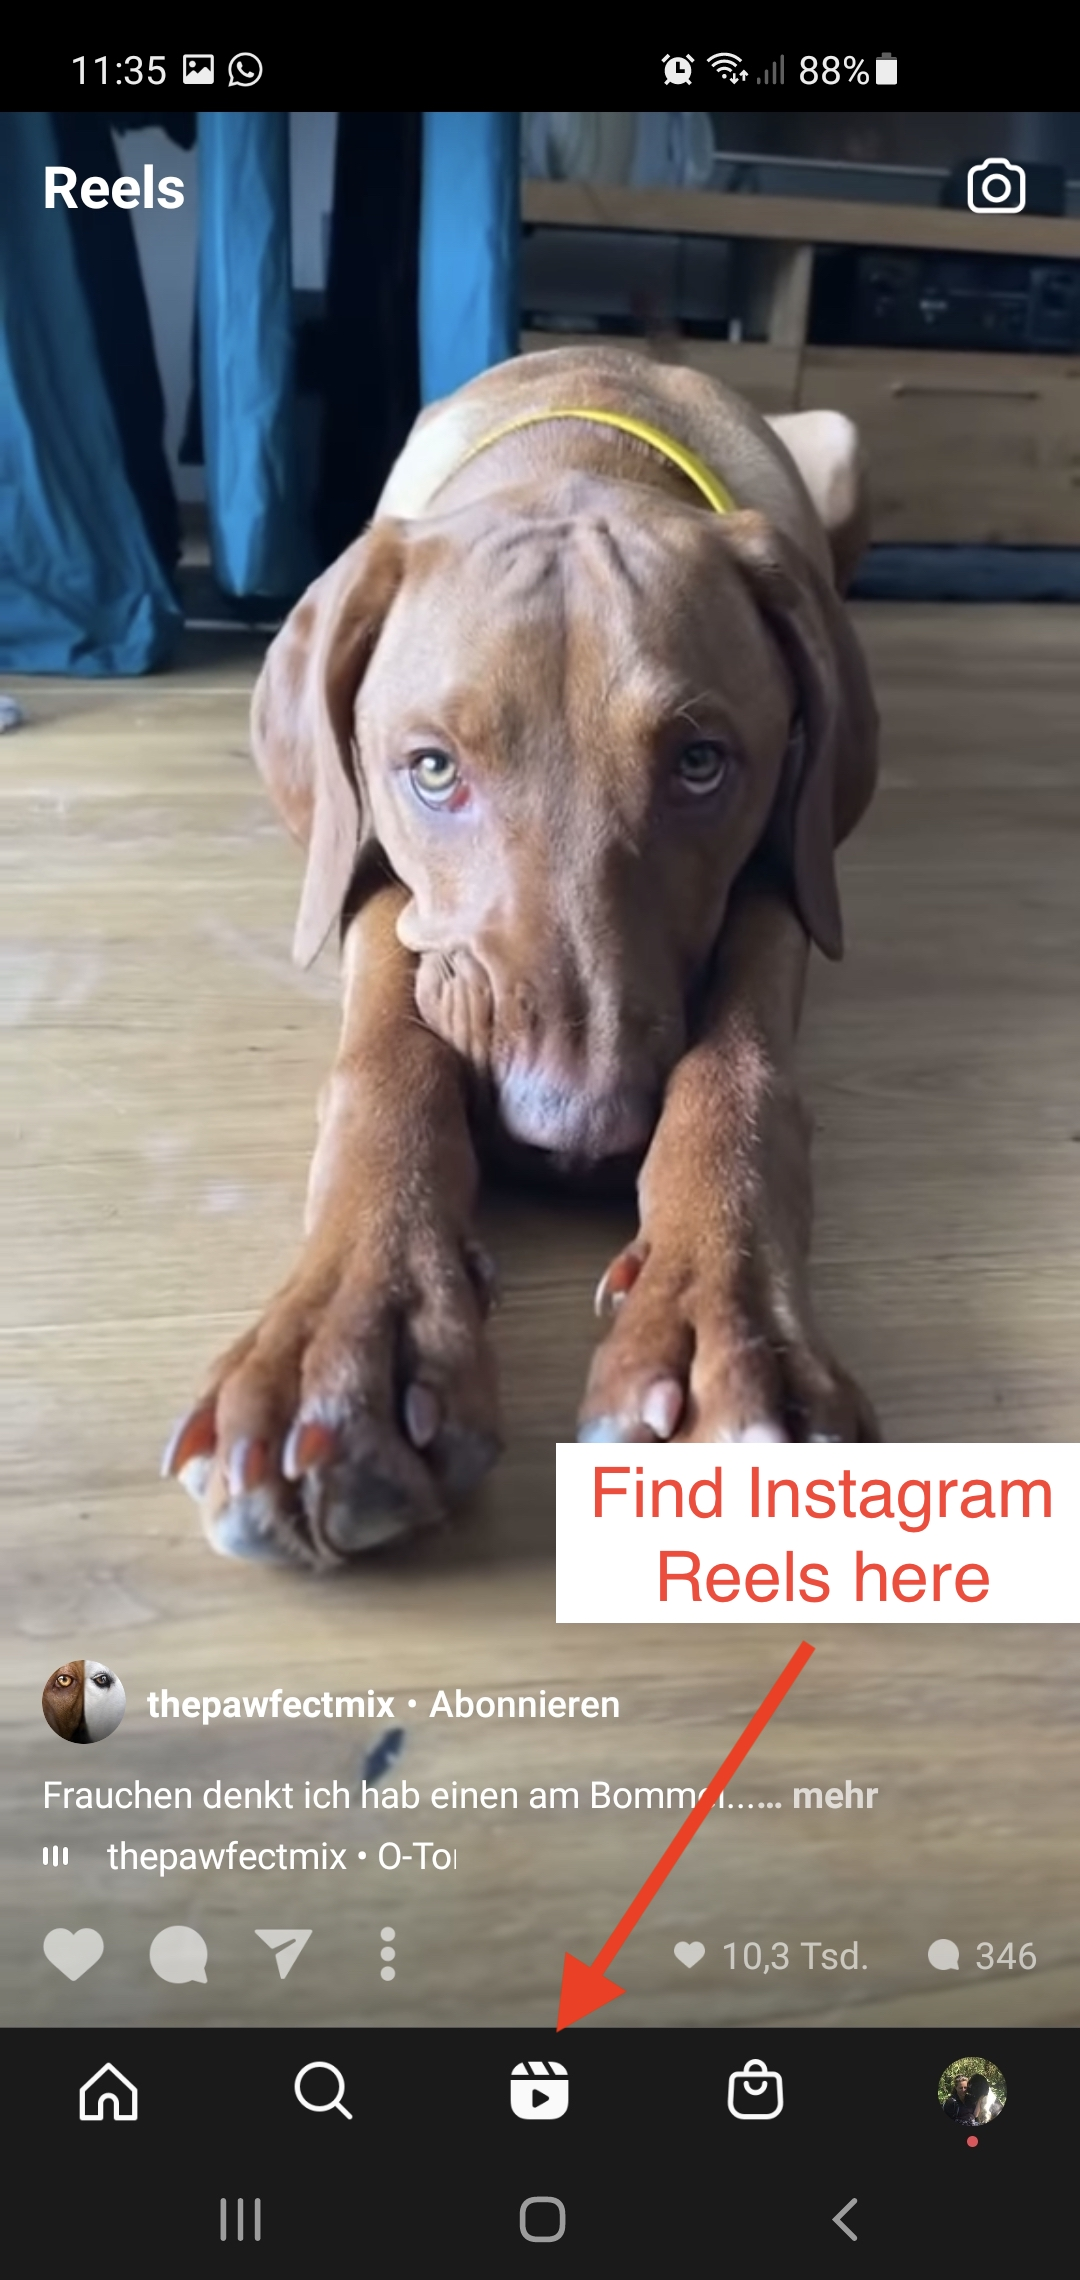 Find the Instagram Reels here